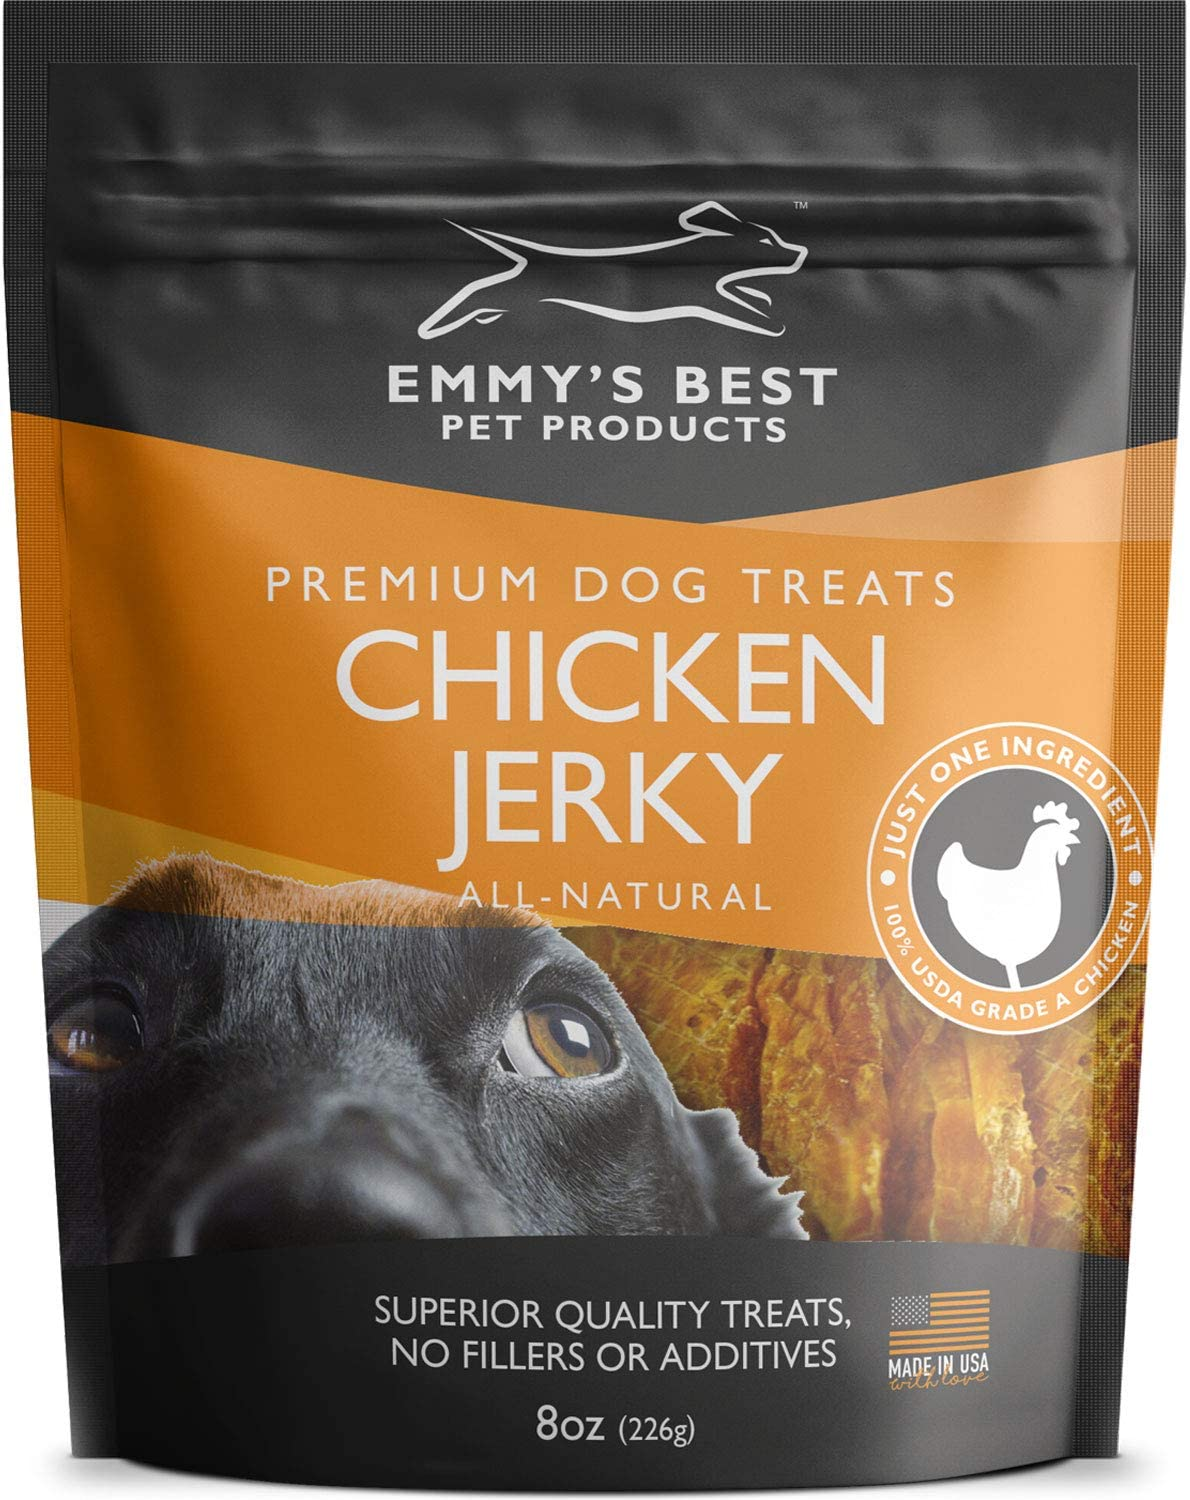 Emmy's Best #1 Premium Chicken Jerky Dog Treats Made in USA Only All Natural - No Fillers, Additives or Preservatives